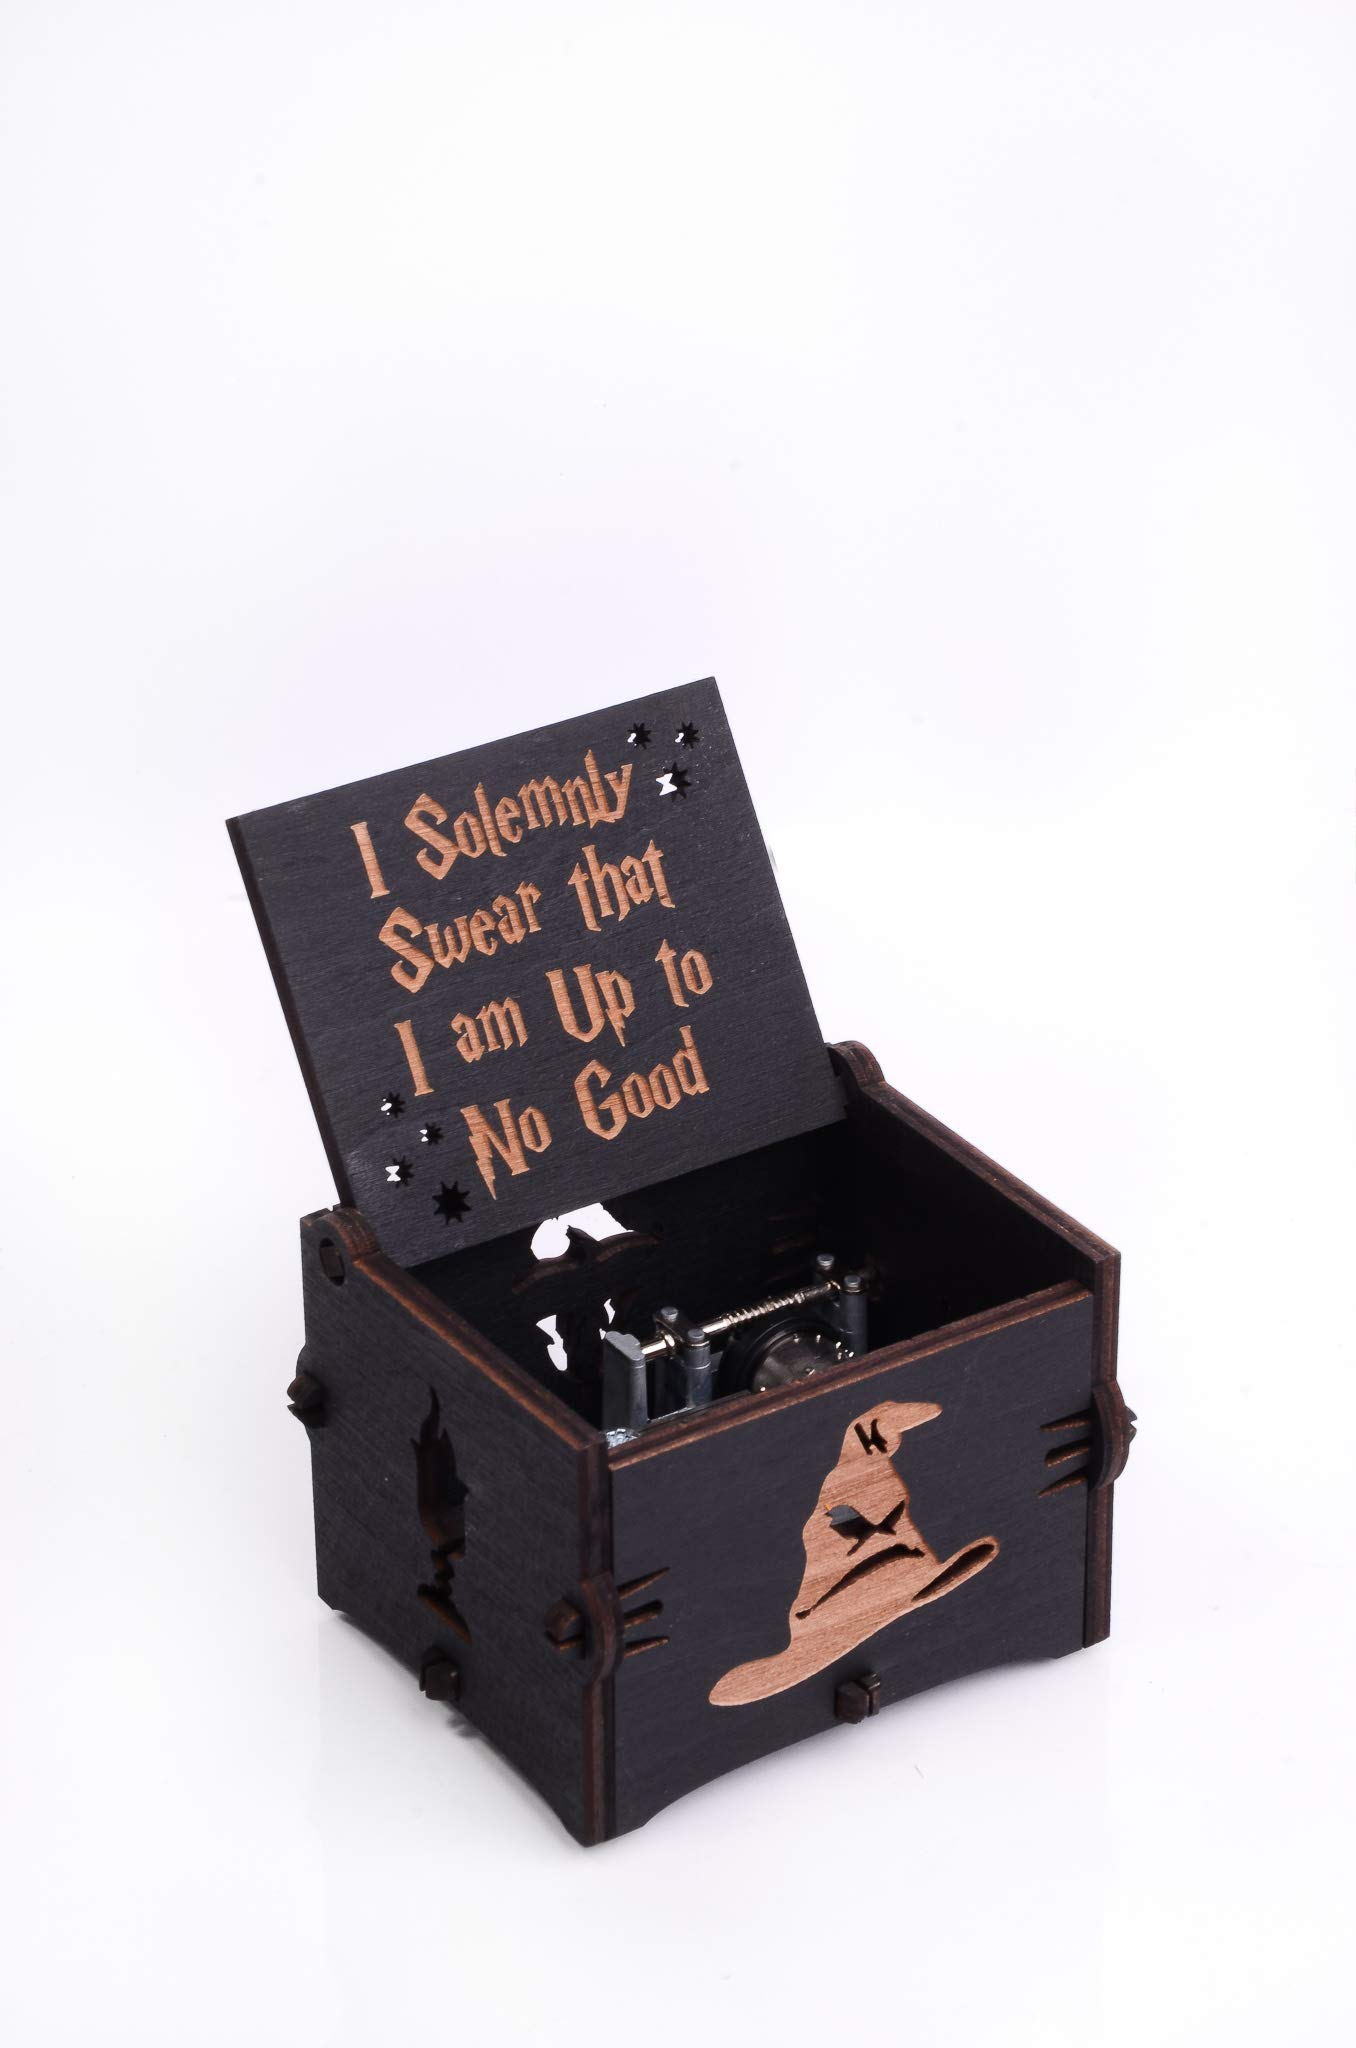 Enjoy The Wood Hedwig's Theme Music Box Wooden Gift Magic Hand Cranked Movement